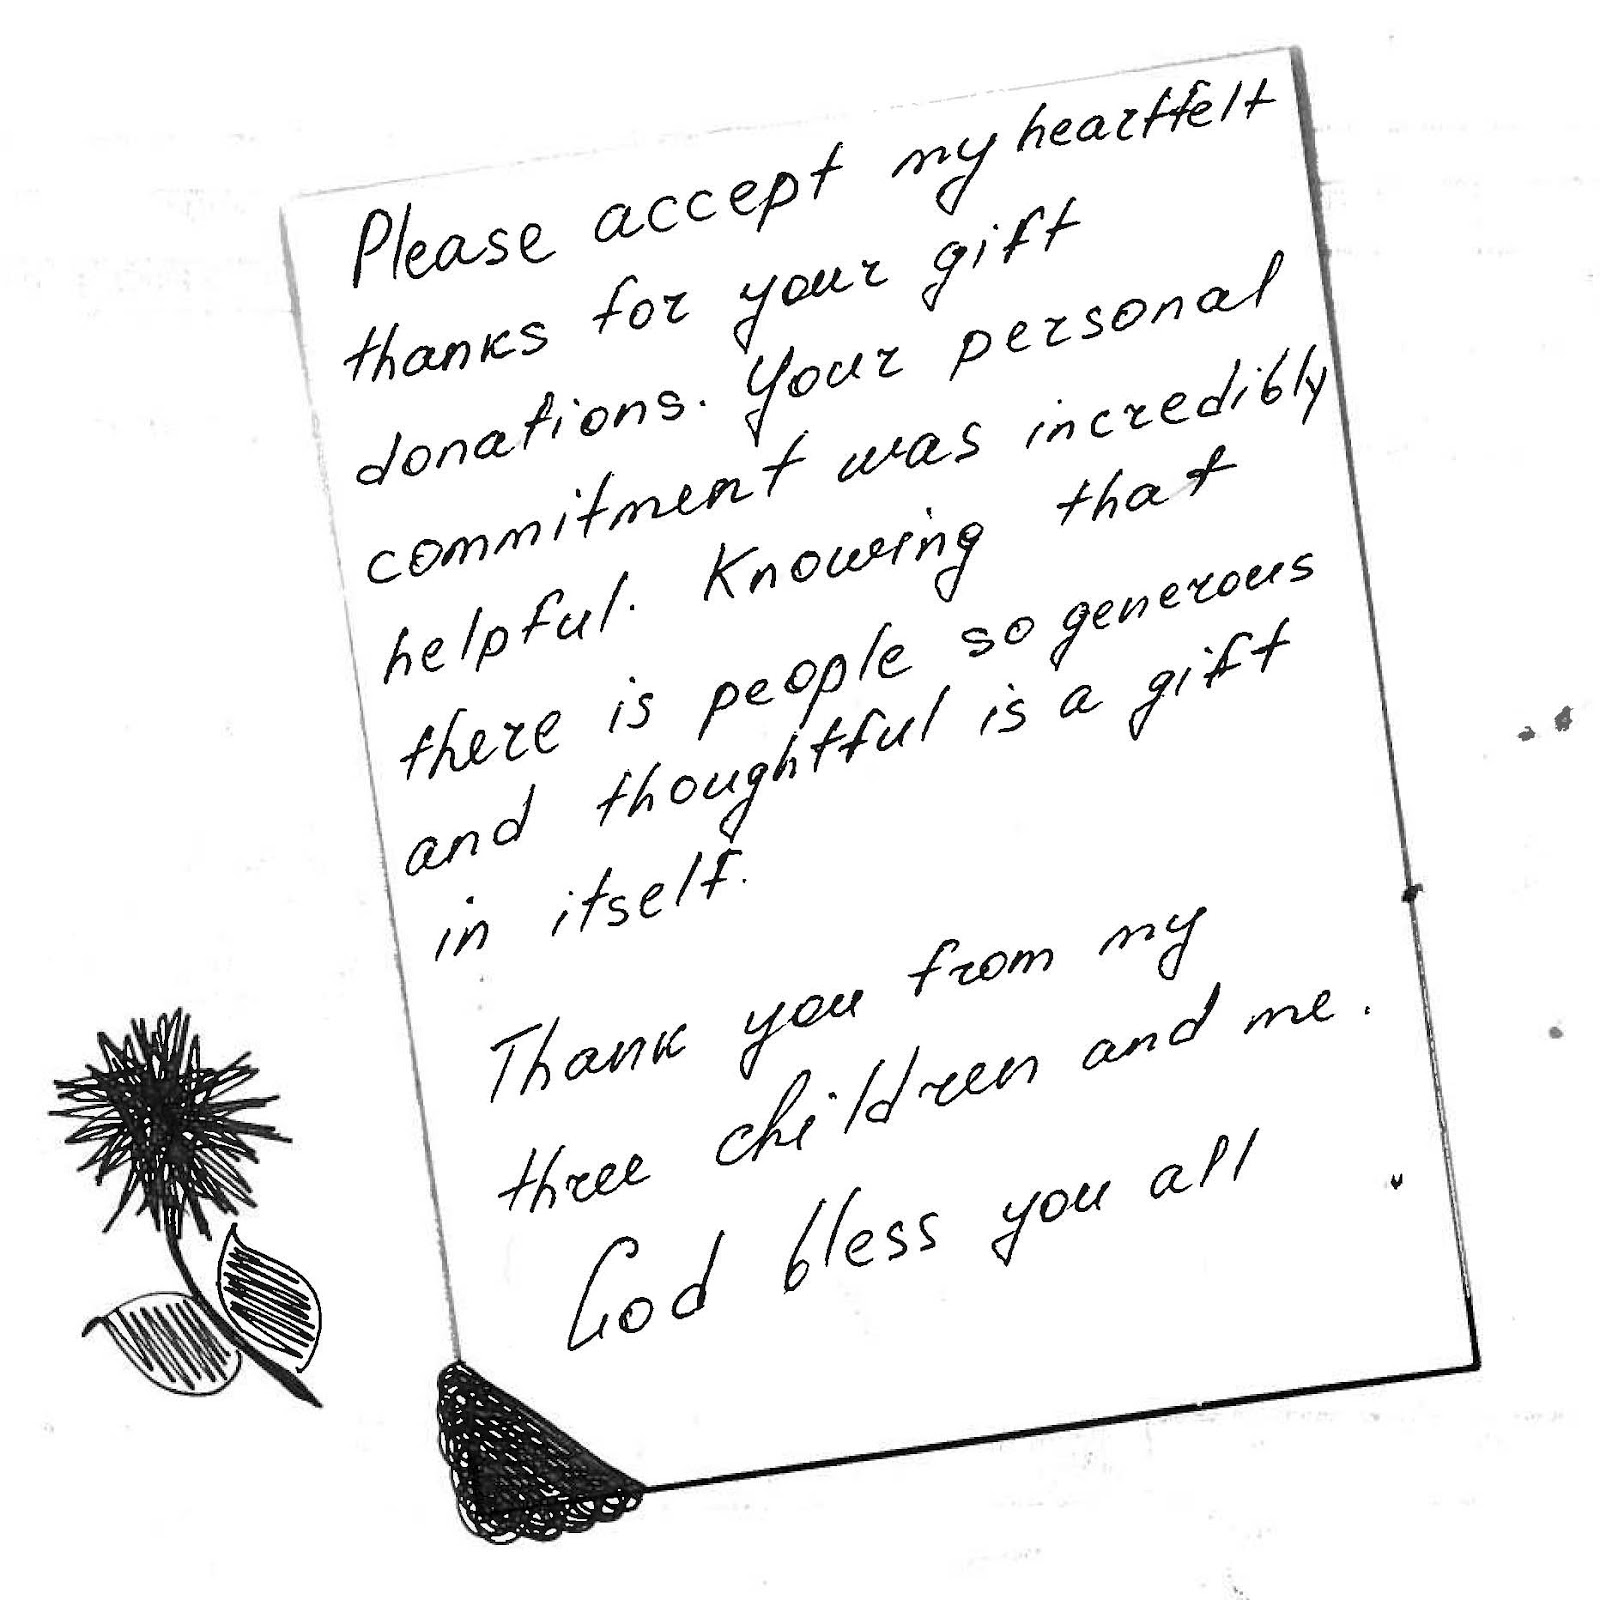 Behind the Scenes with JFS: A Very Special Thank You Note